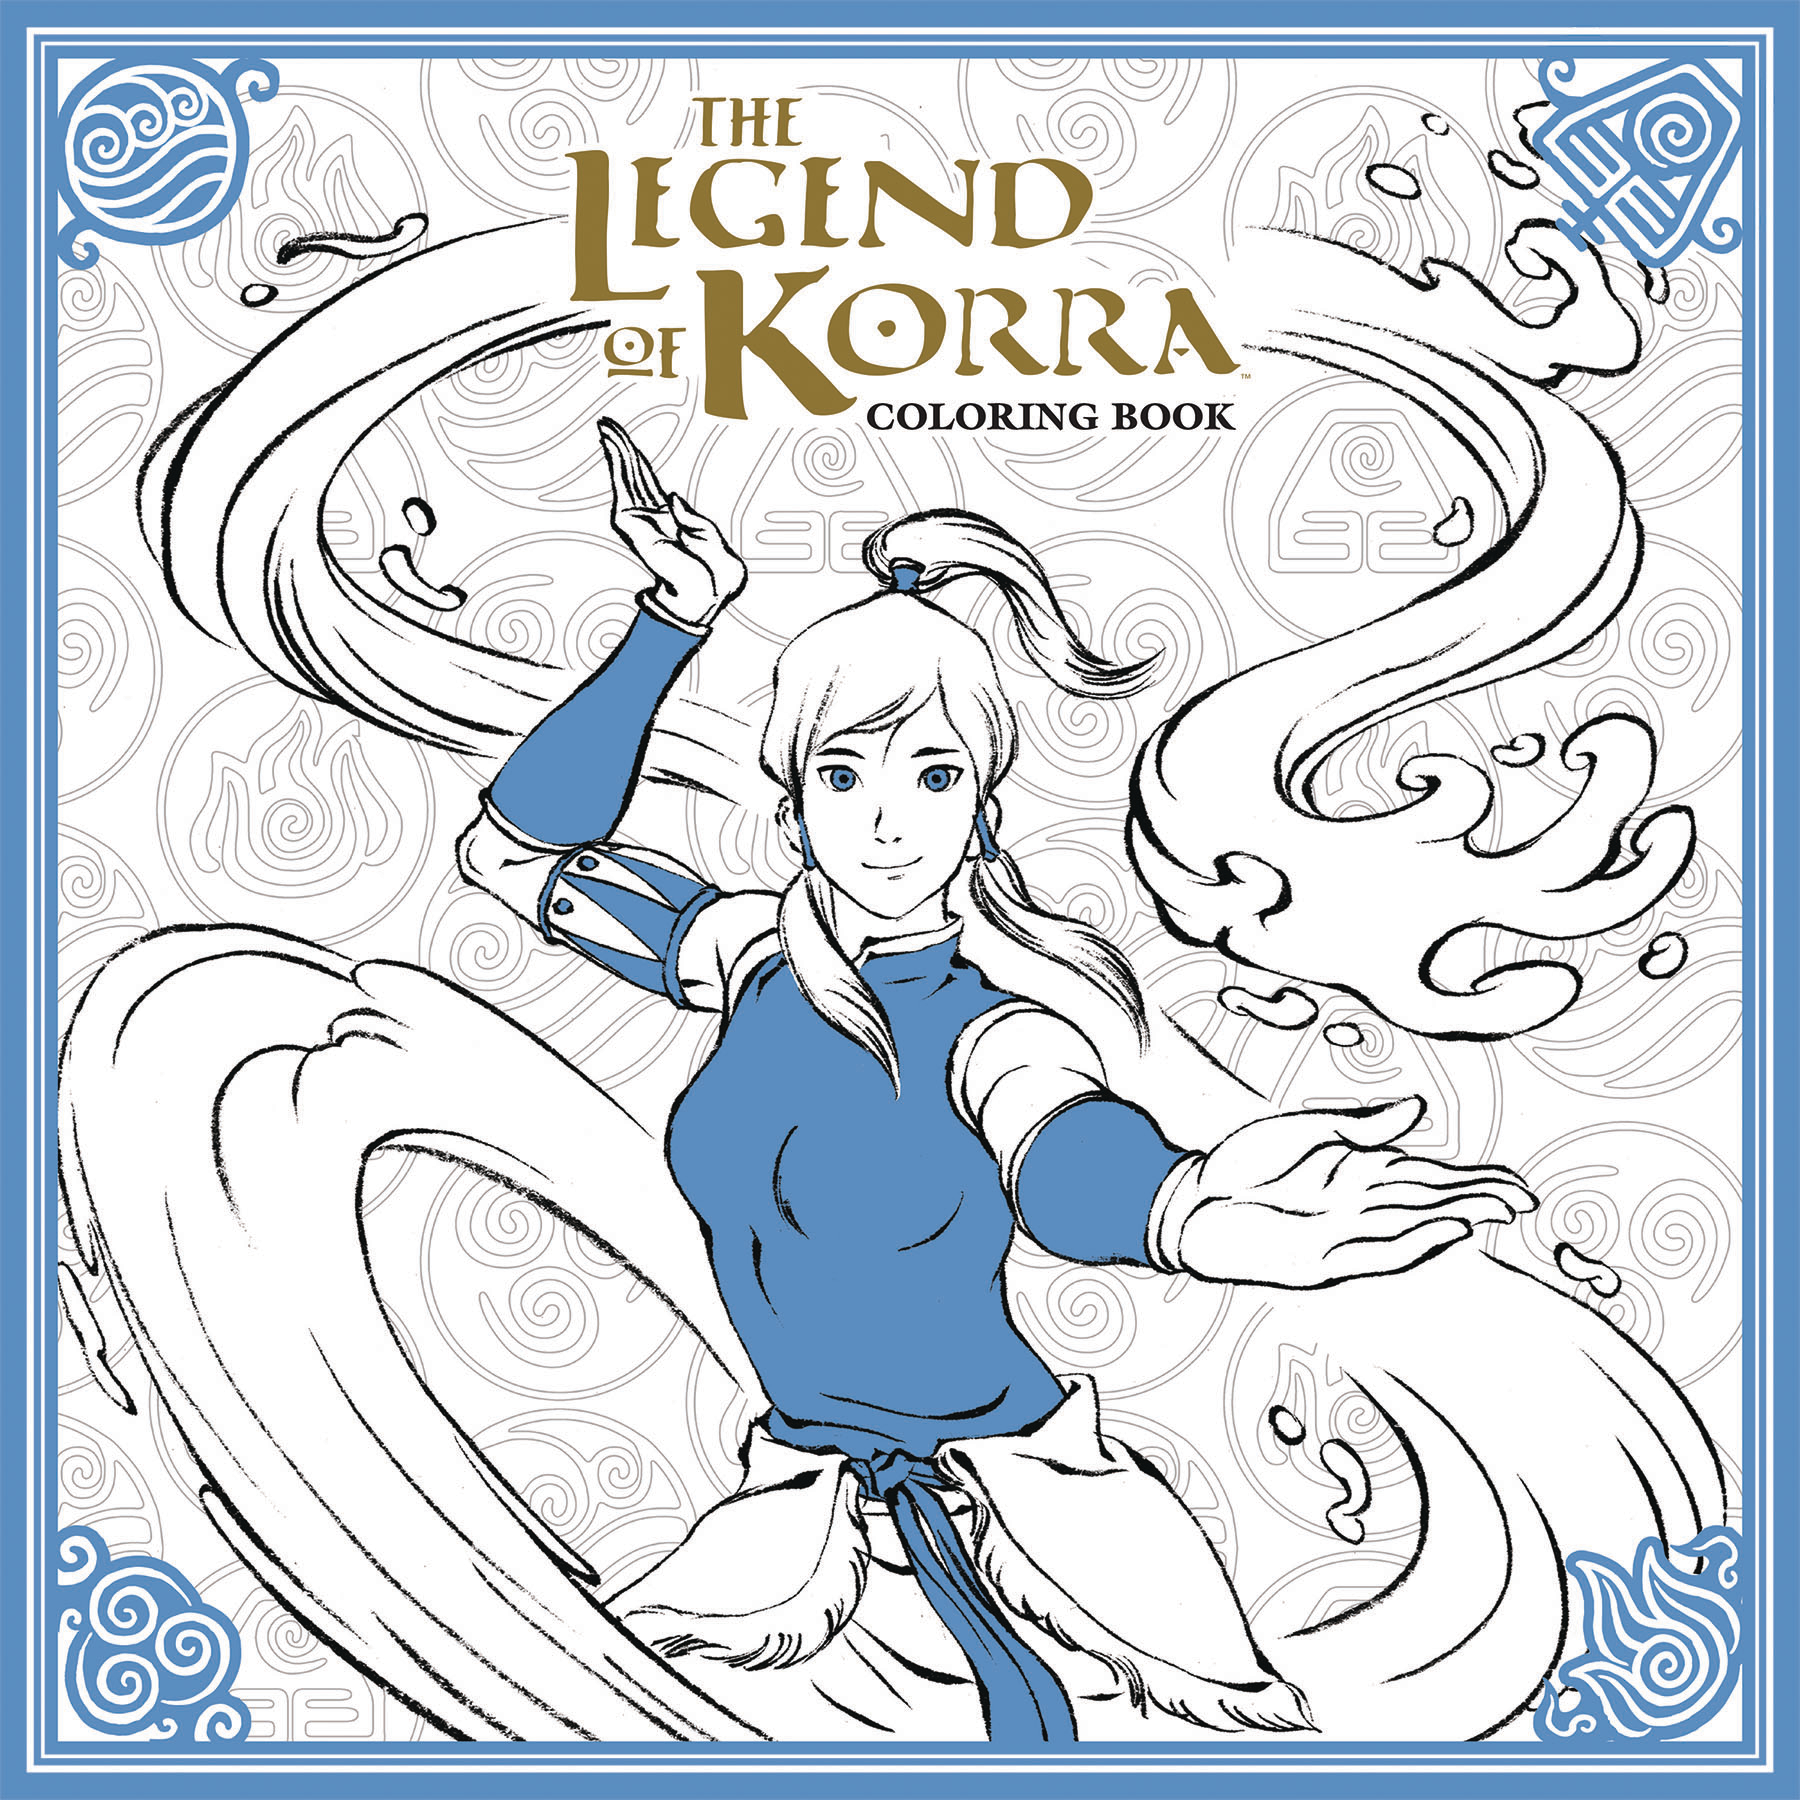 LEGEND OF KORRA COLORING BOOK TP